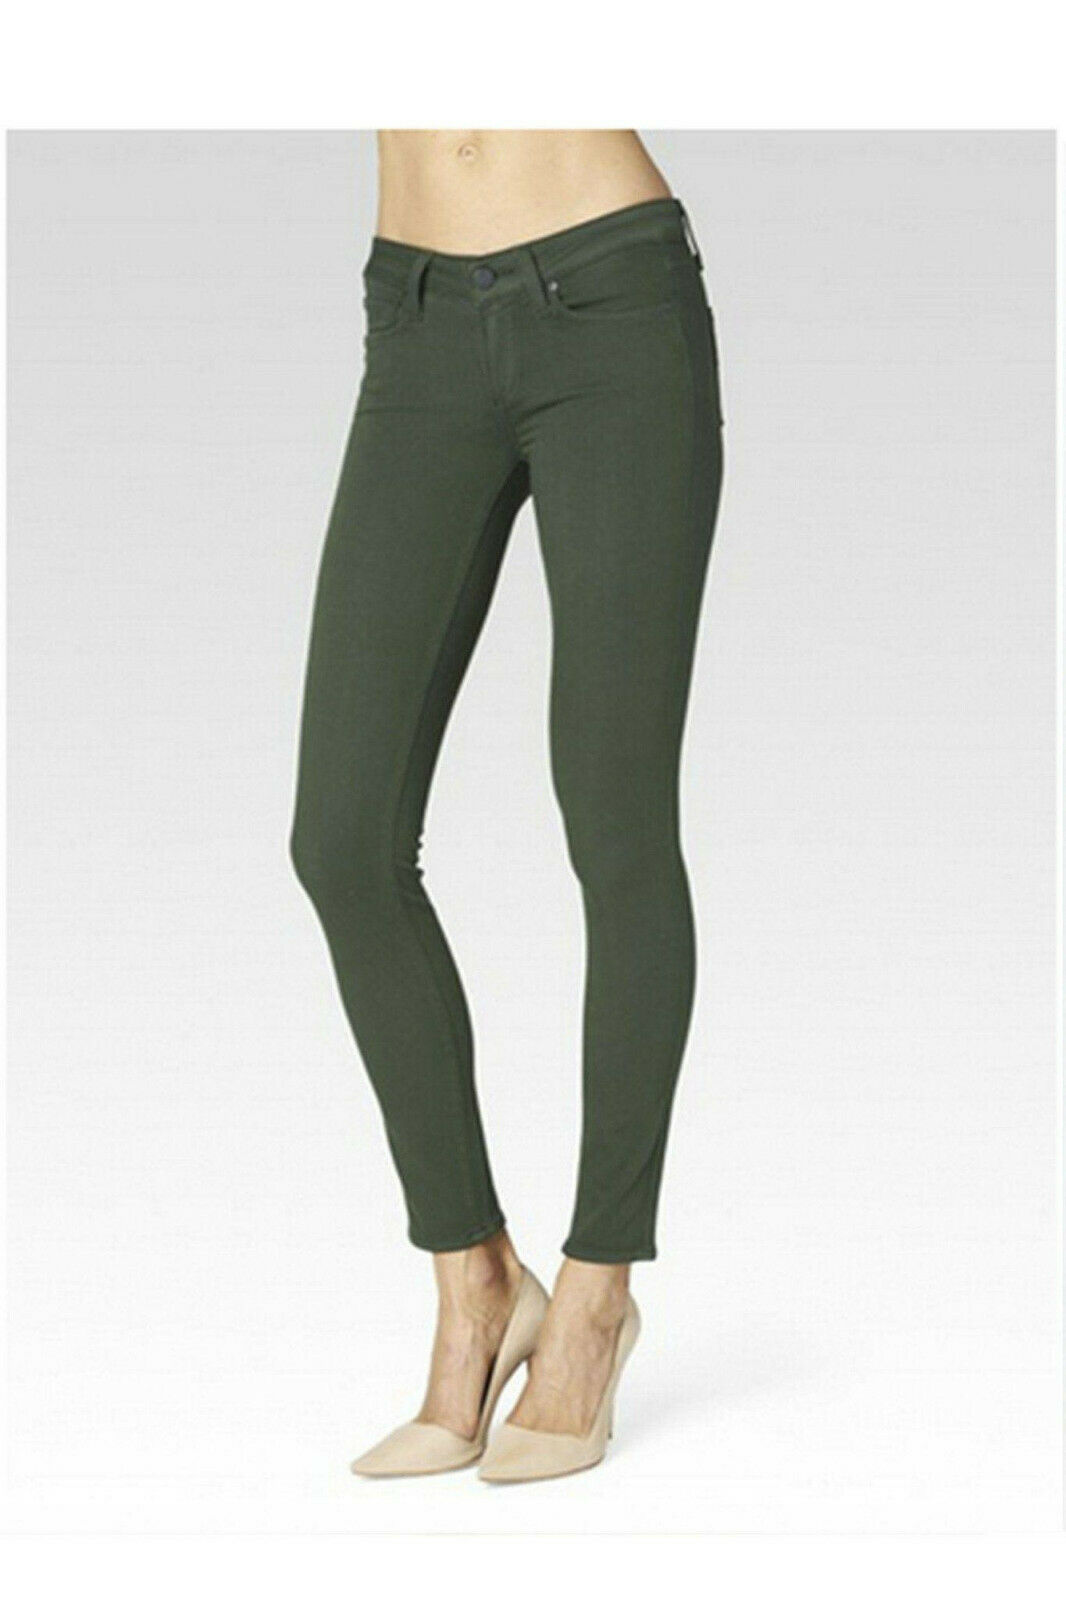 Paige Transcend Verdugo Ankle Ultra Skinny Stretch Jeans Army Green 25 NEW